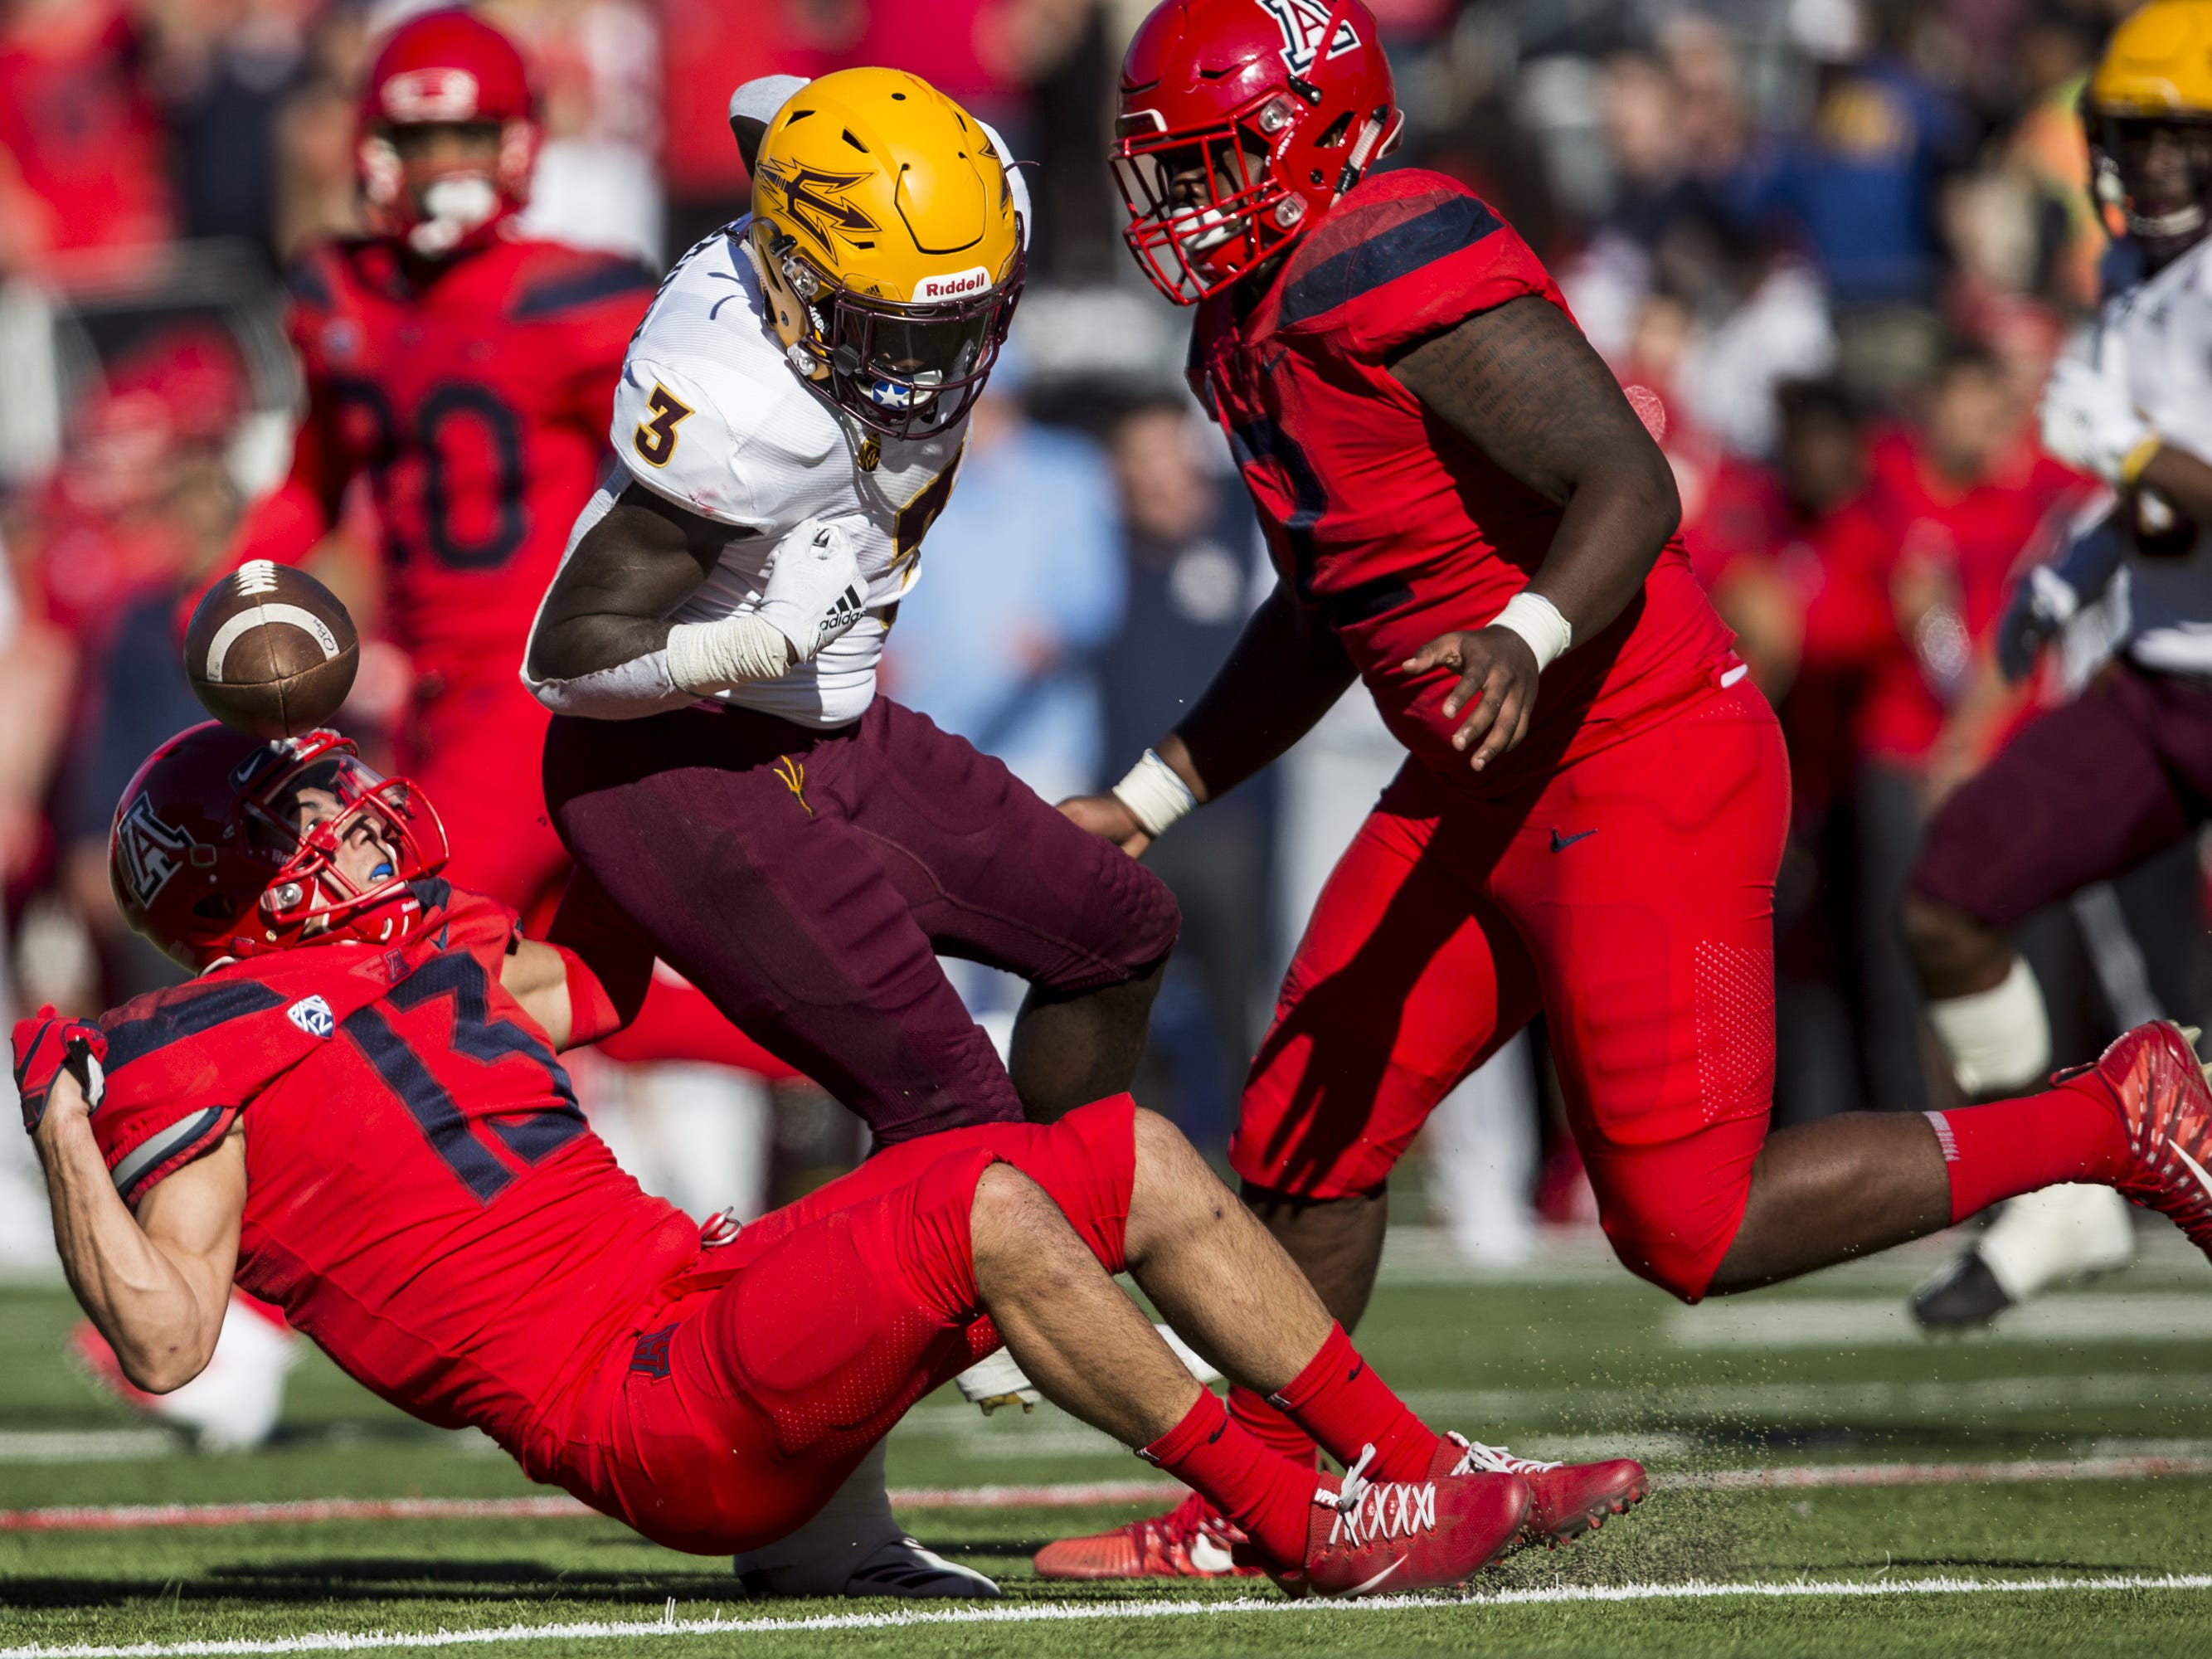 Arizona's Chacho Ulloa (13) strips the ball from Arizona State's Eno Benjamin during the first half of the Territorial Cup on Saturday, Nov. 24, 2018, at Arizona Stadium in Tucson, Ariz.